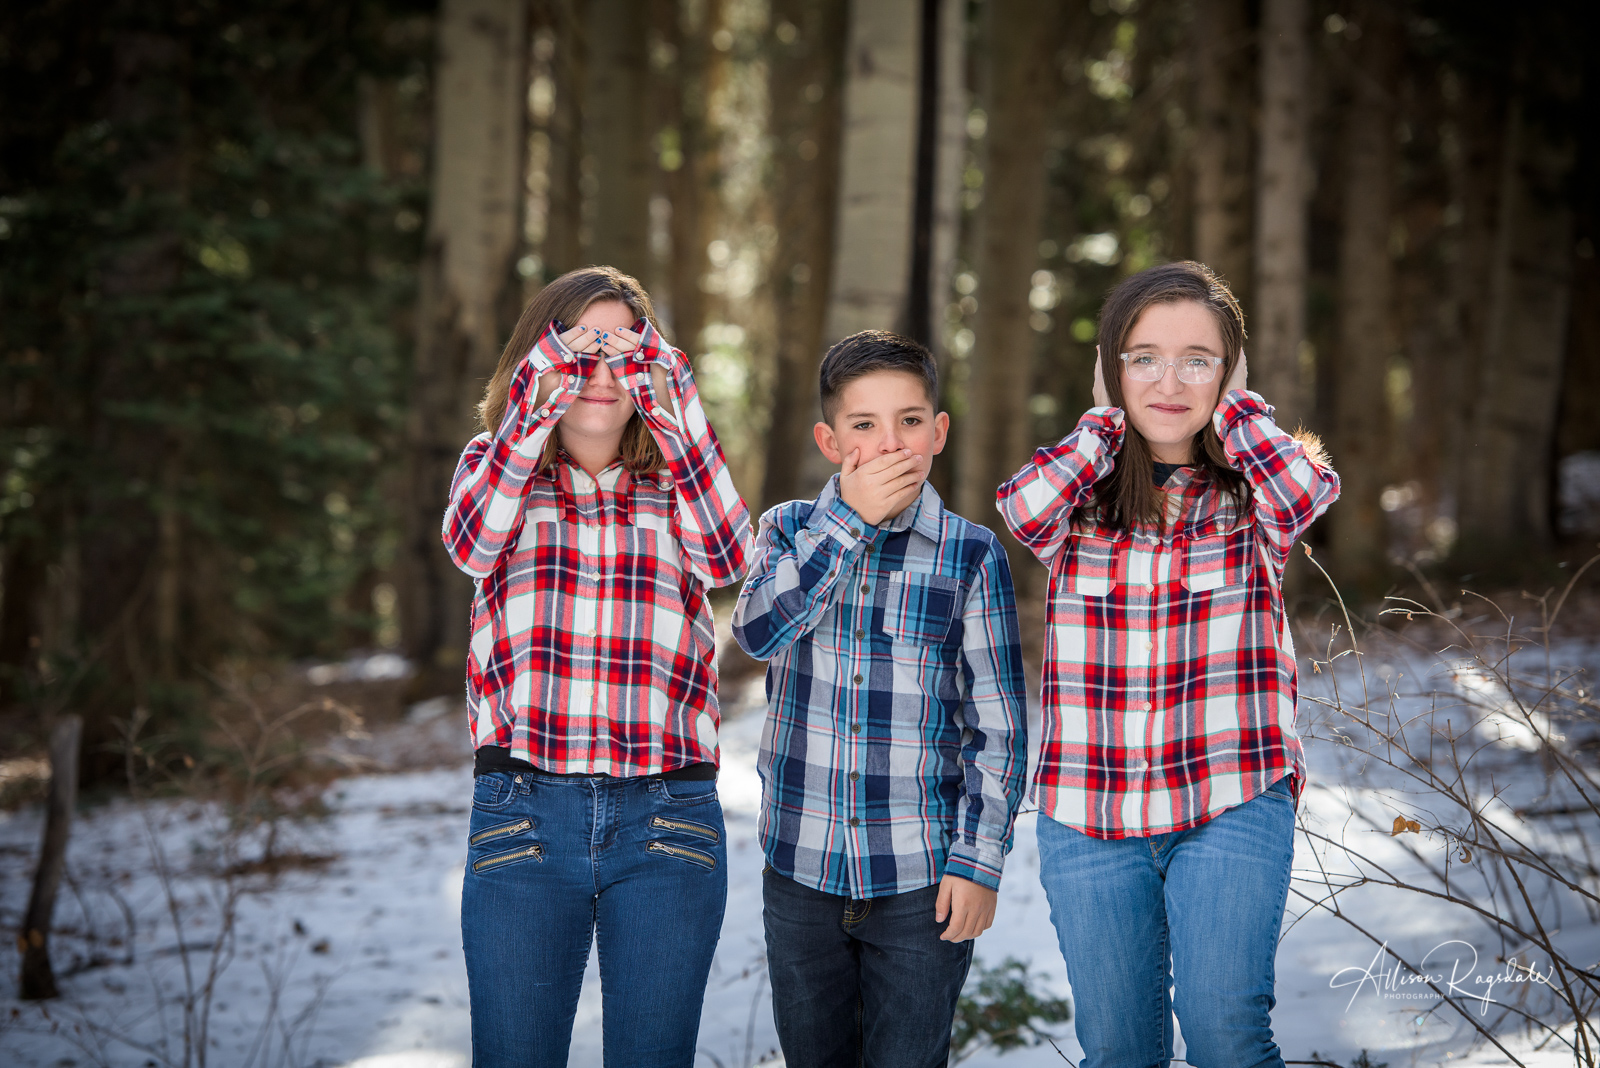 Fun Family Portrait Ideas